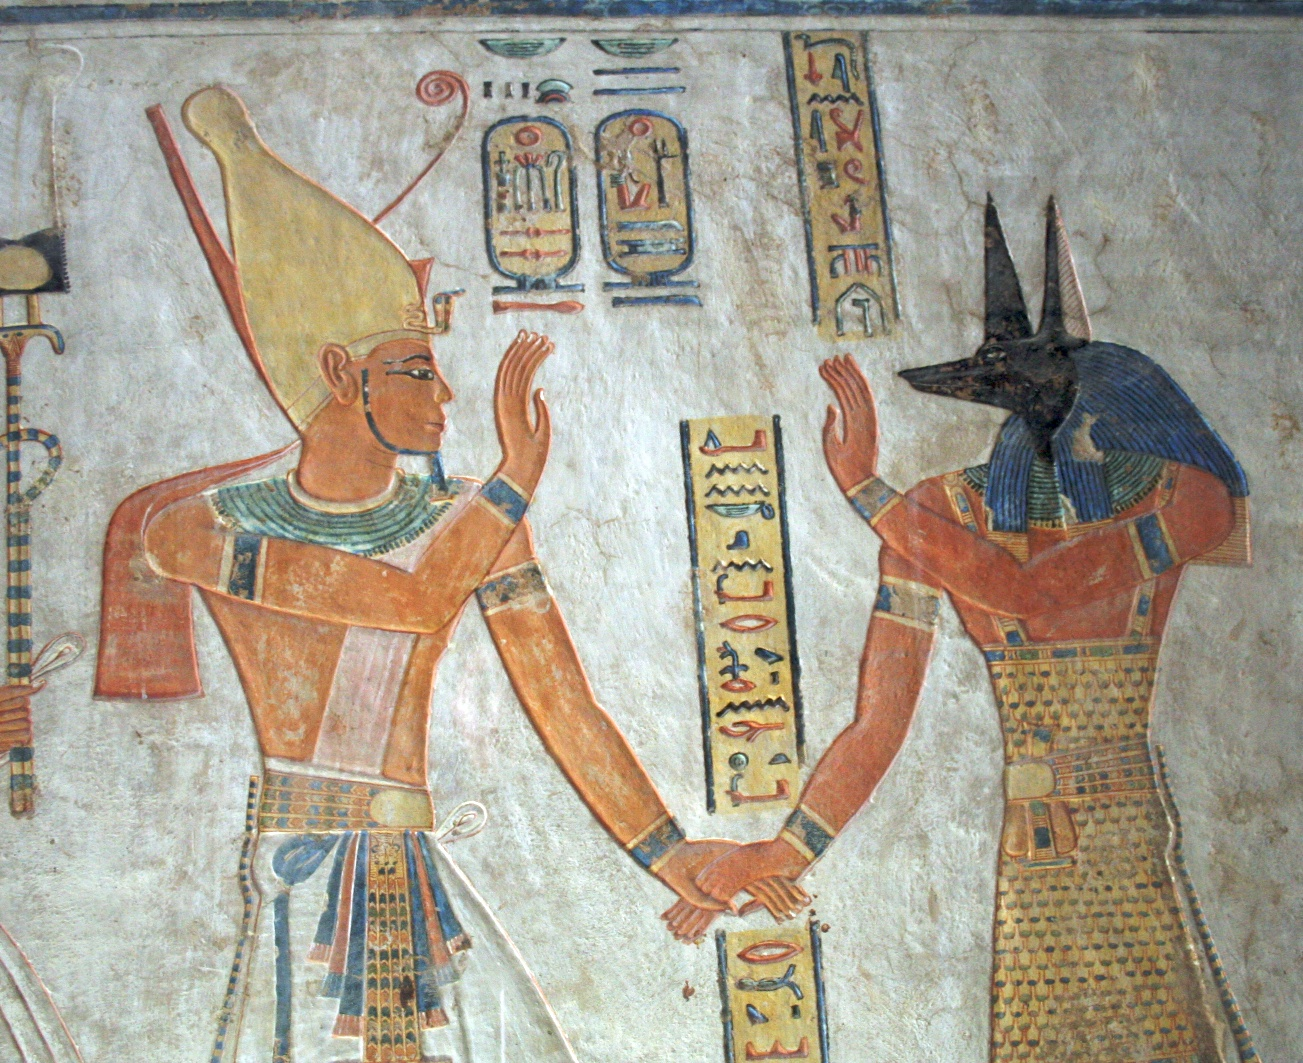 a history of the reign of ramses the great in ancient egypt He was the second longest ruler in egyptian history in a 66 year reign and  ramses the great during his reign he  of ancient egypt before the reign.